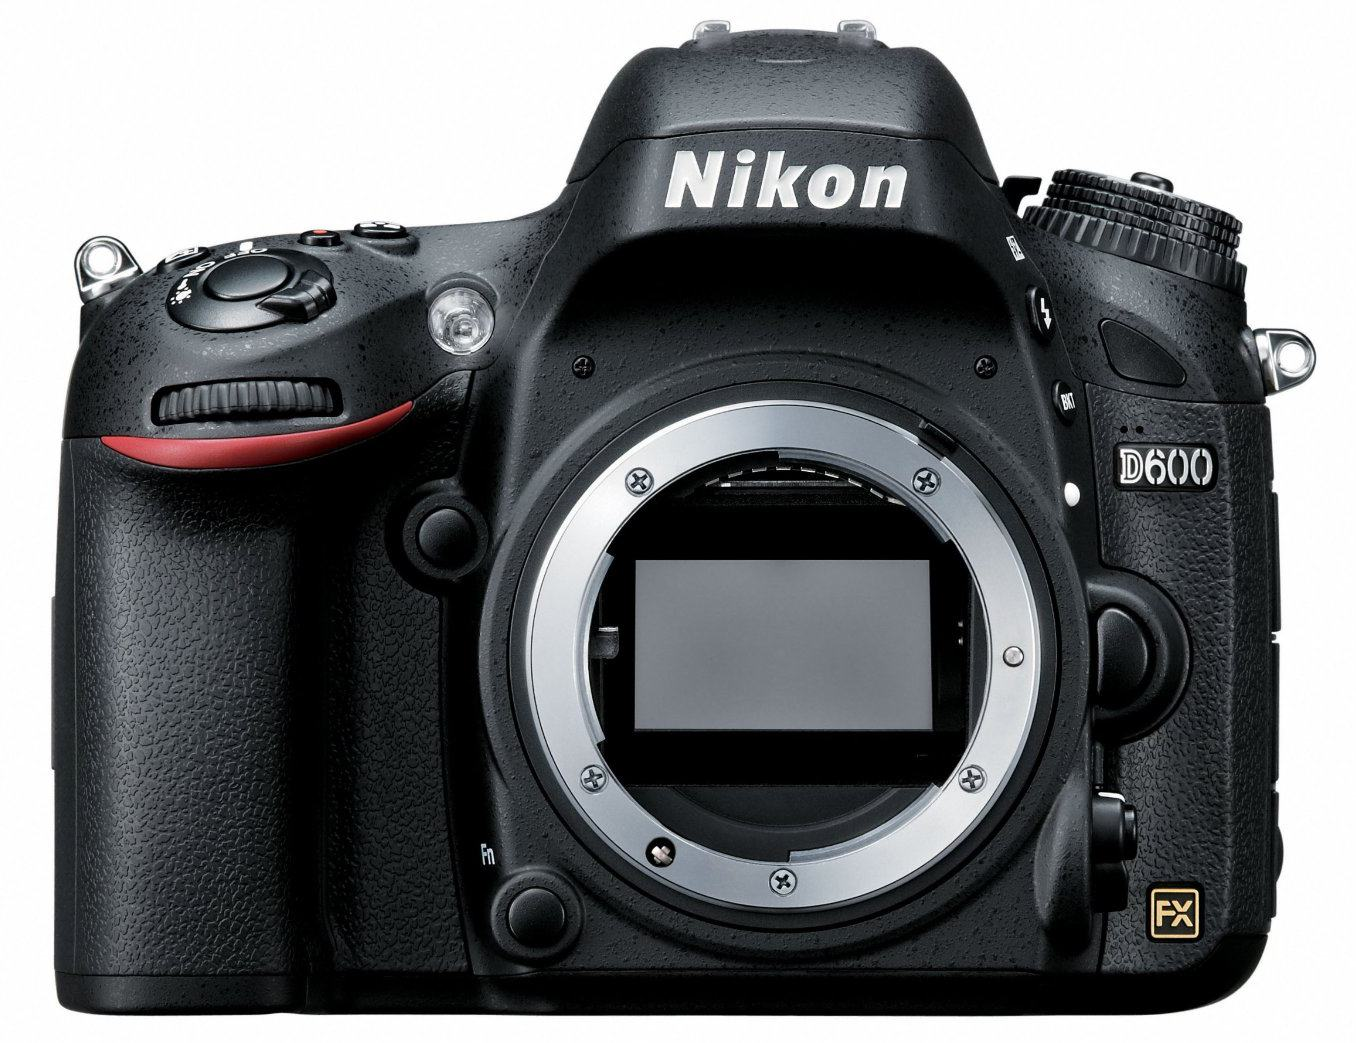 D600. Nikon can't afford another fiasco